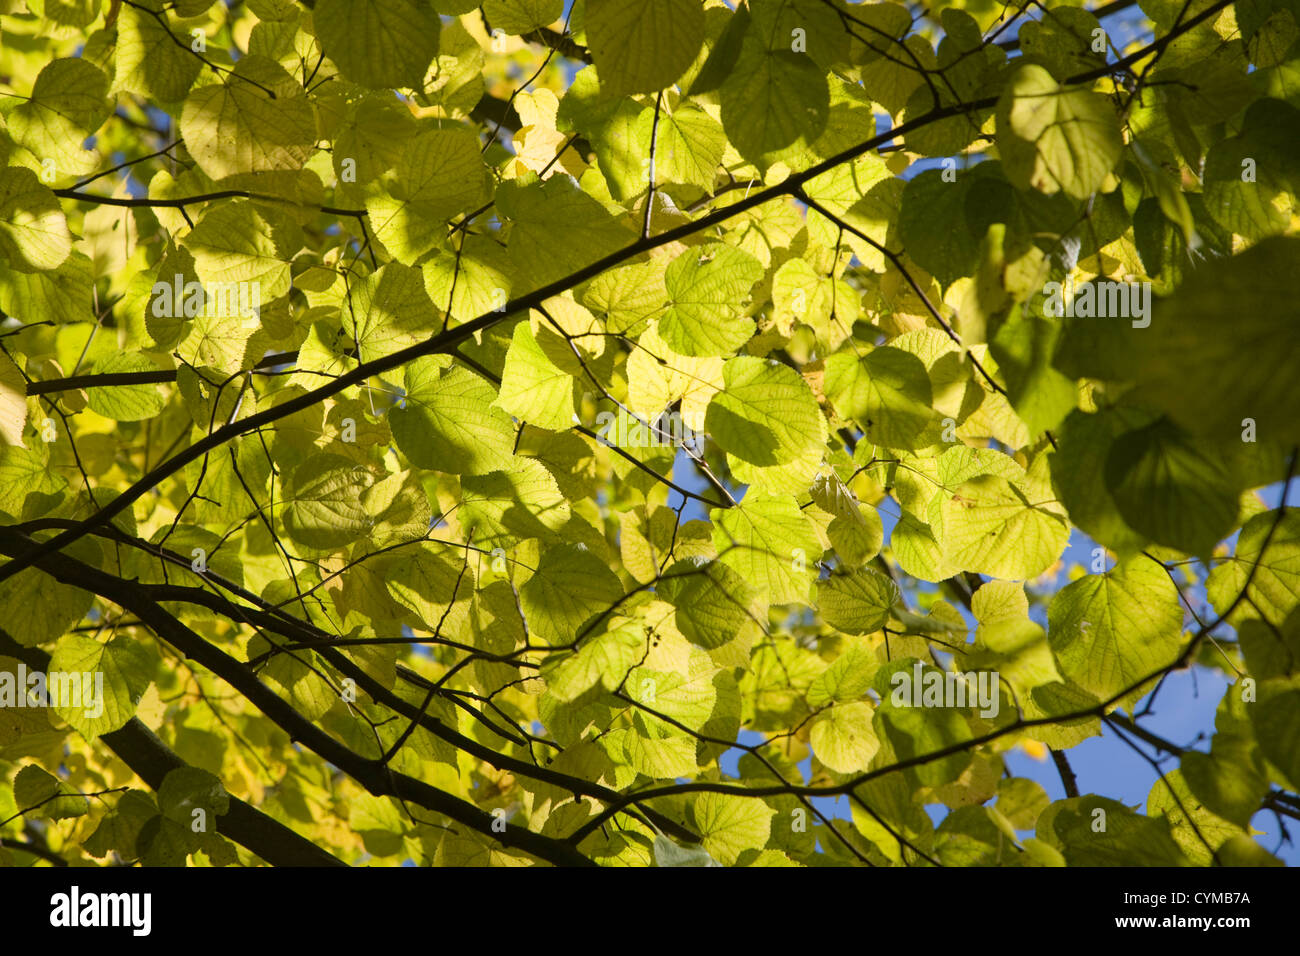 Looking up through dappled leaves to blue sky - Stock Image